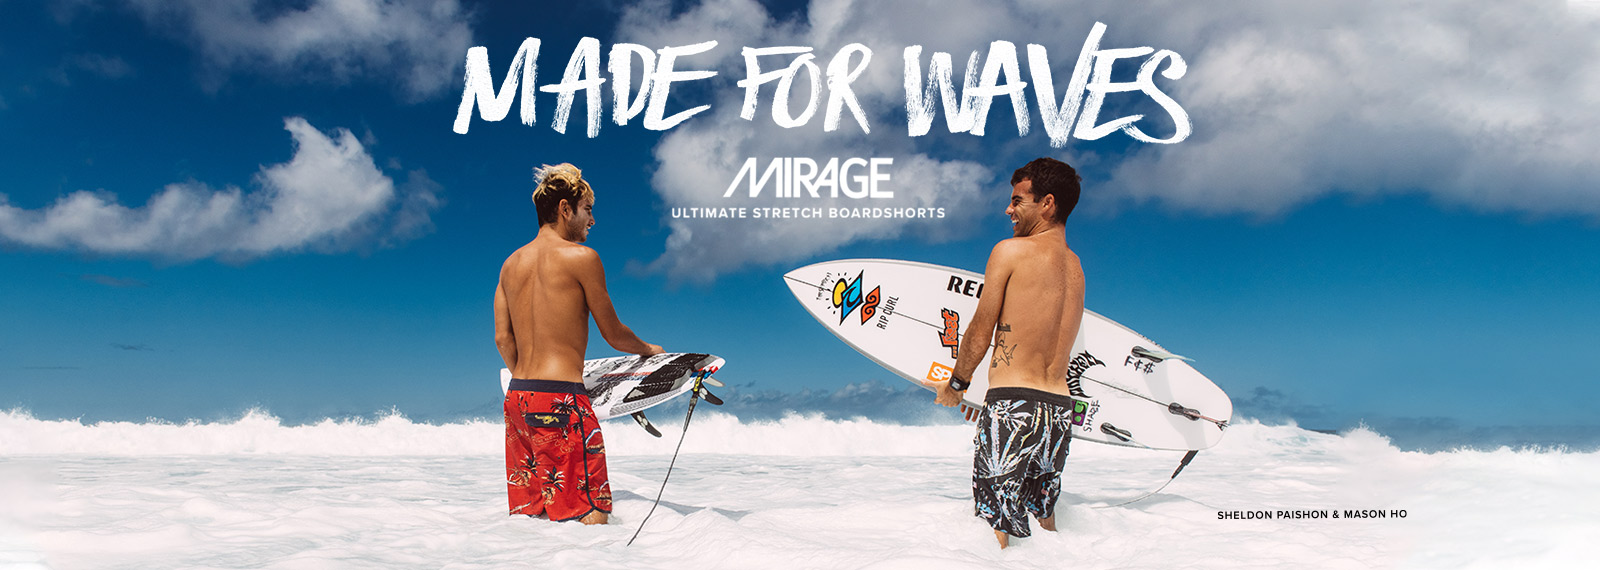 MADE FOR WAVE MIRAGE